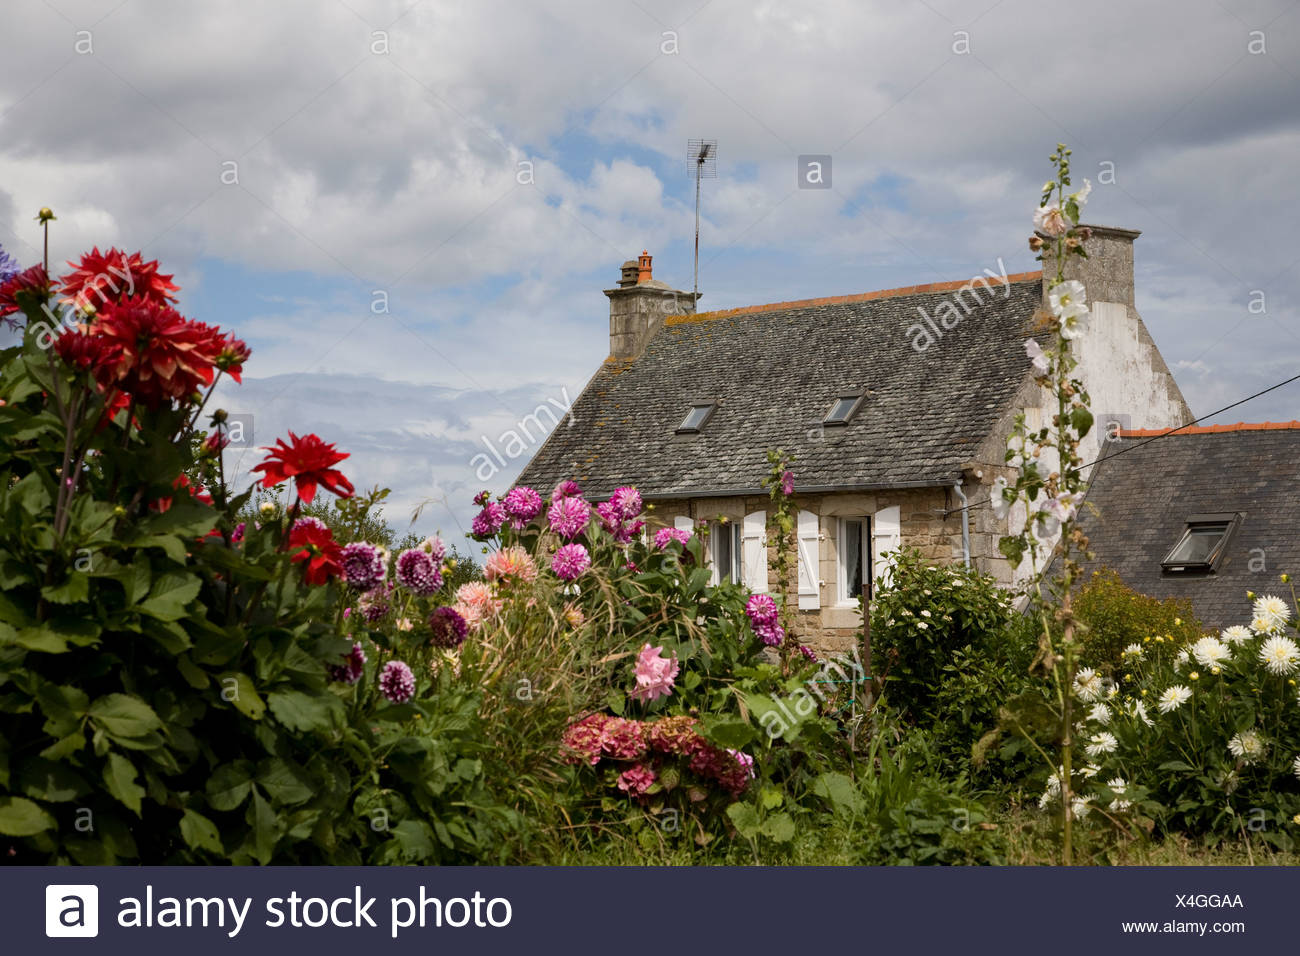 Traditional country house with flowers in foreground - Stock Image